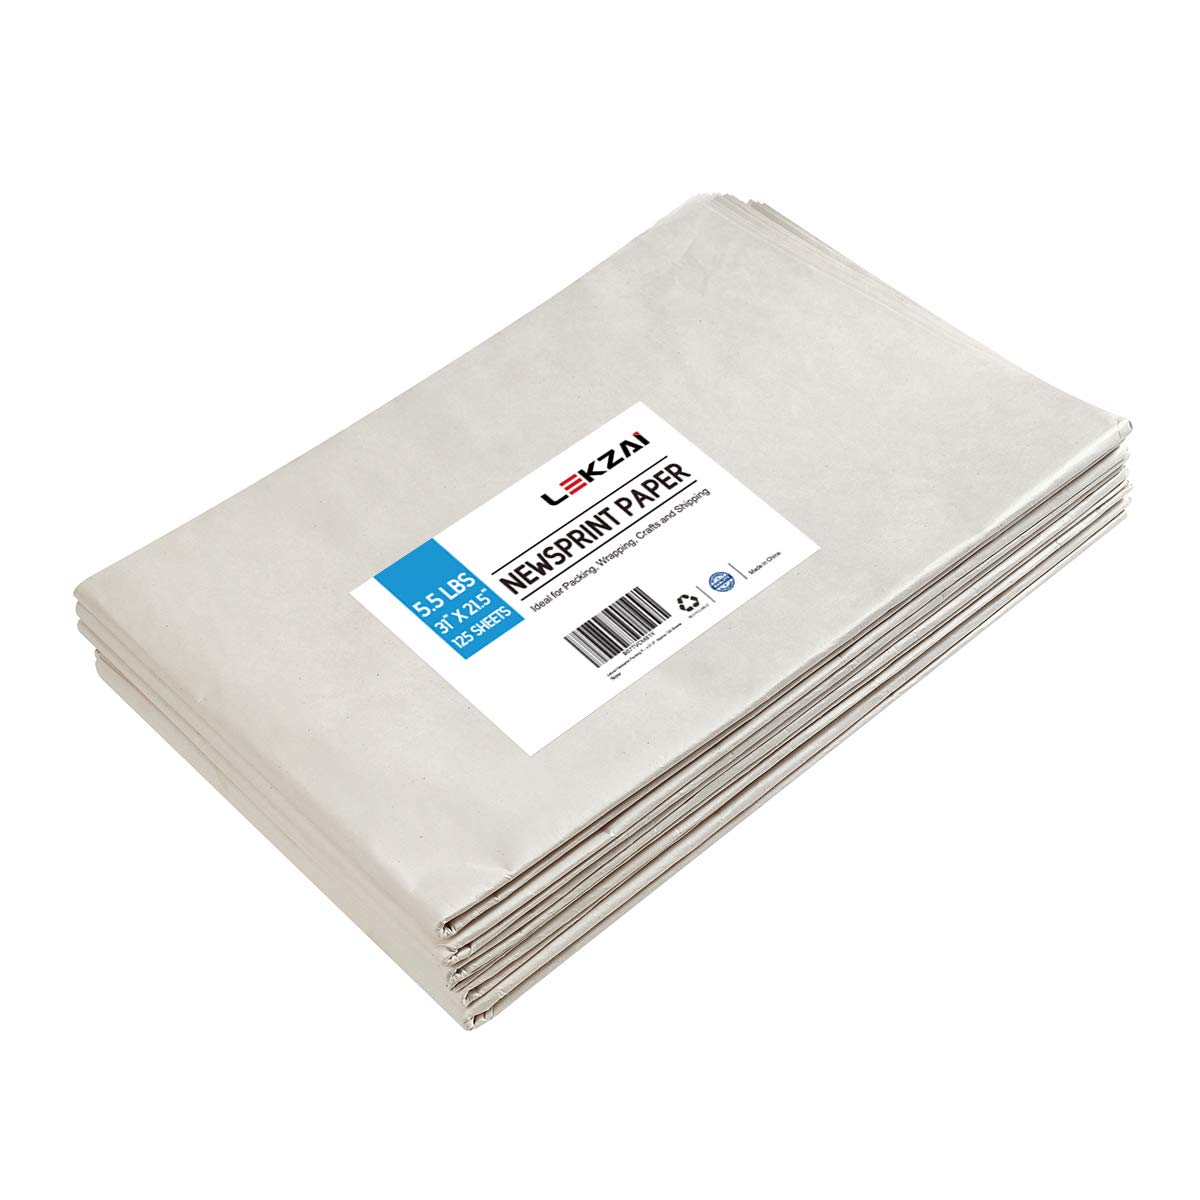 Lekzai Newsprint Packing Paper, 5.5 lbs, 31'' x 21.5'', Approx 125 Sheets by Lekzai